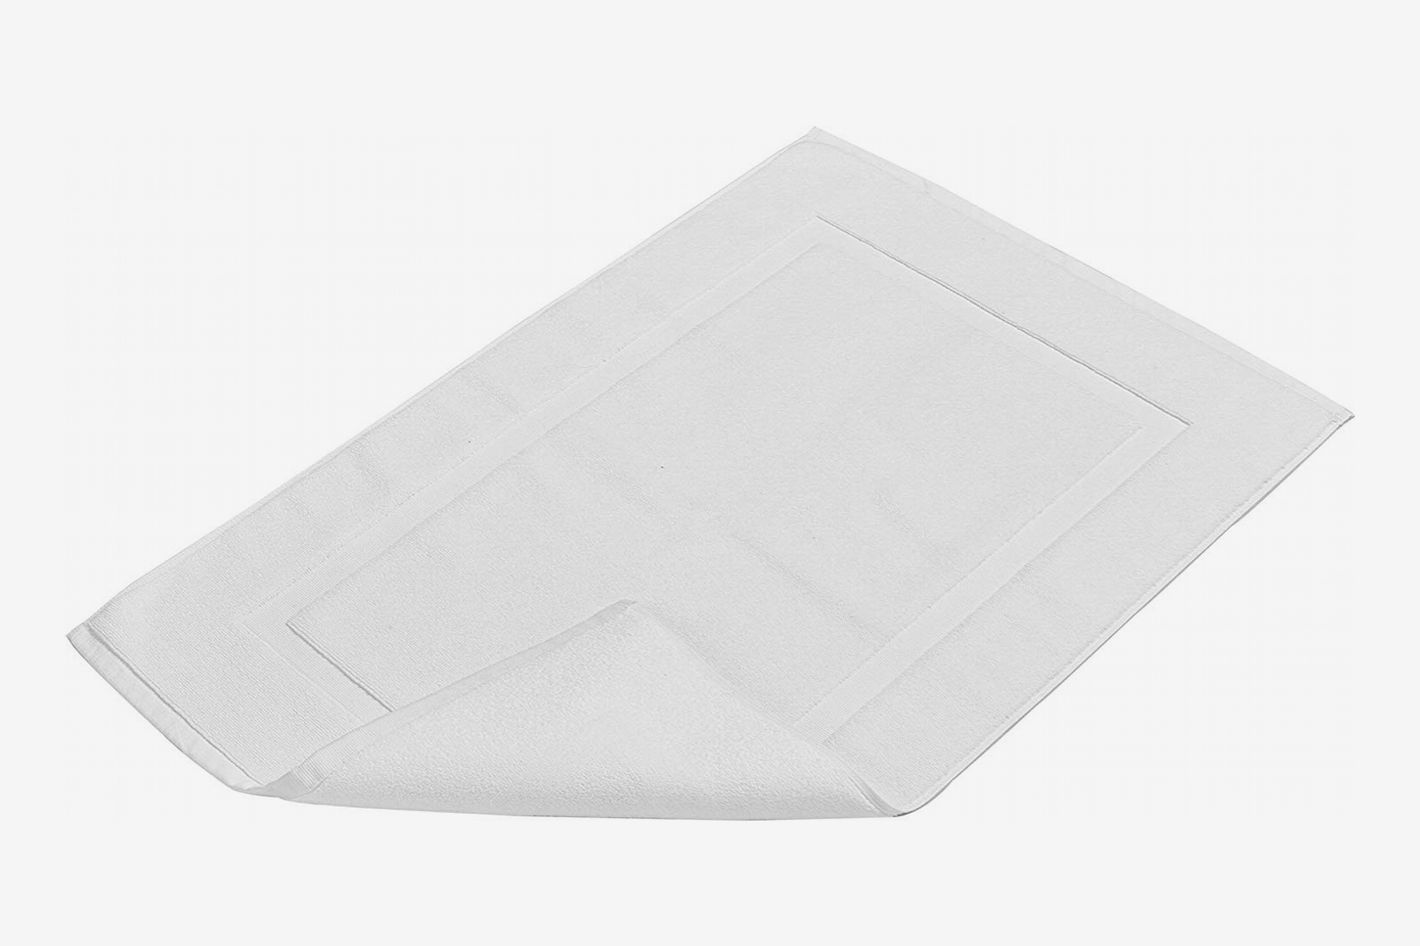 Amazon Basics bath mat